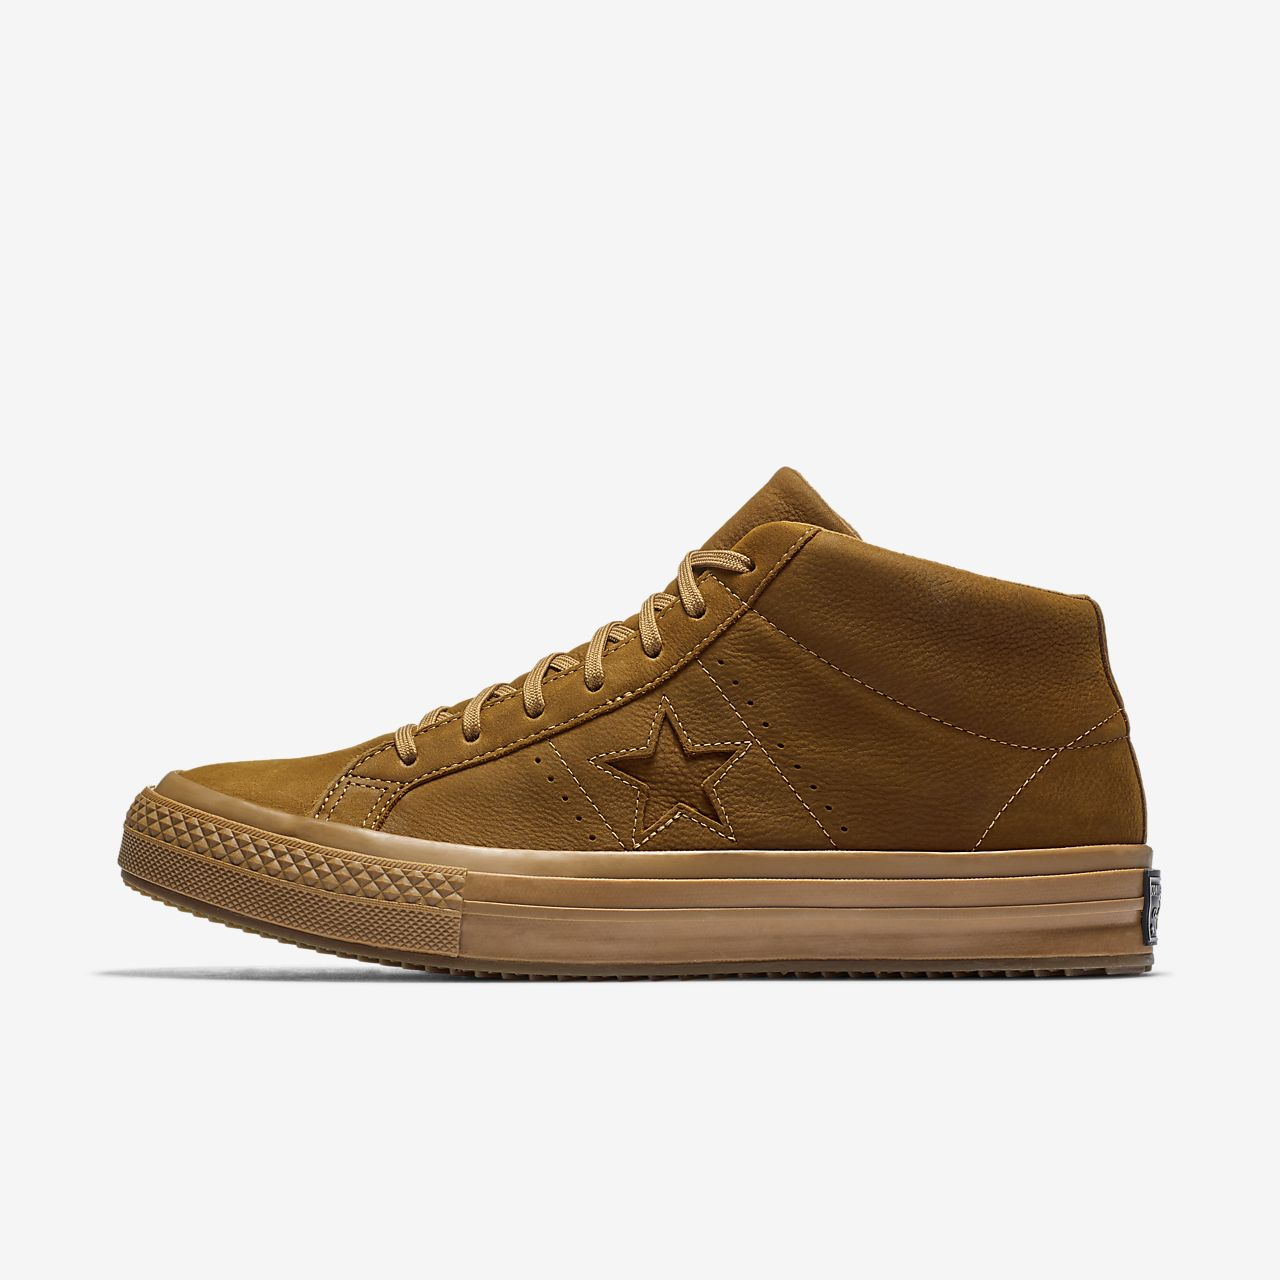 ONE STAR MID SUEDE - FOOTWEAR - High-tops & sneakers Converse QQoBC